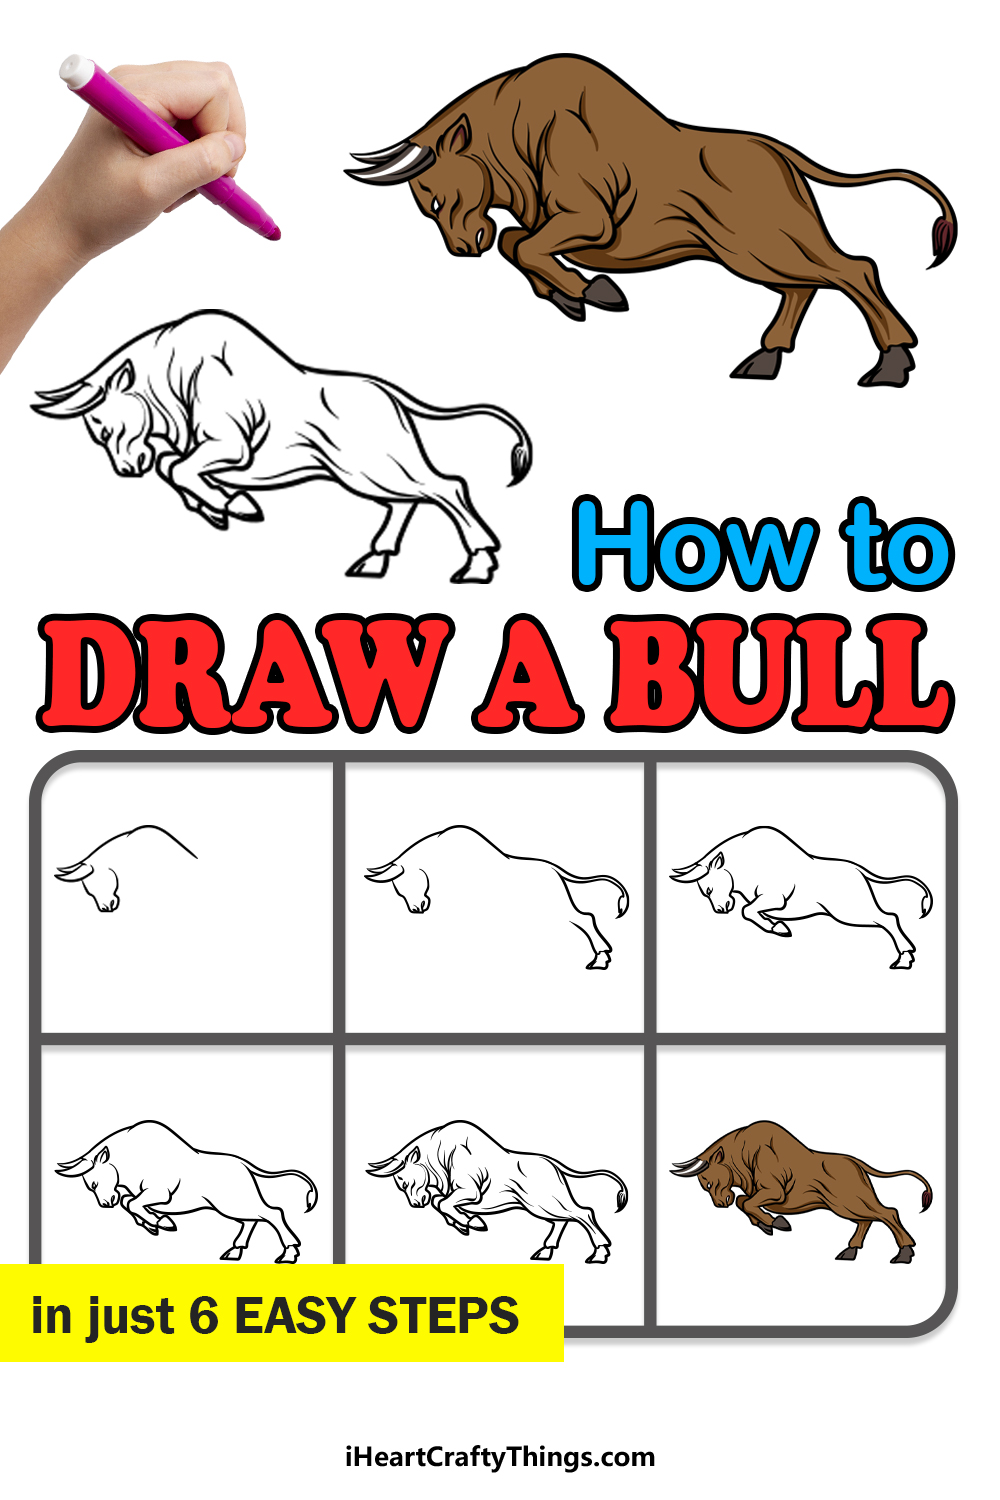 how to draw a bull in 6 easy steps